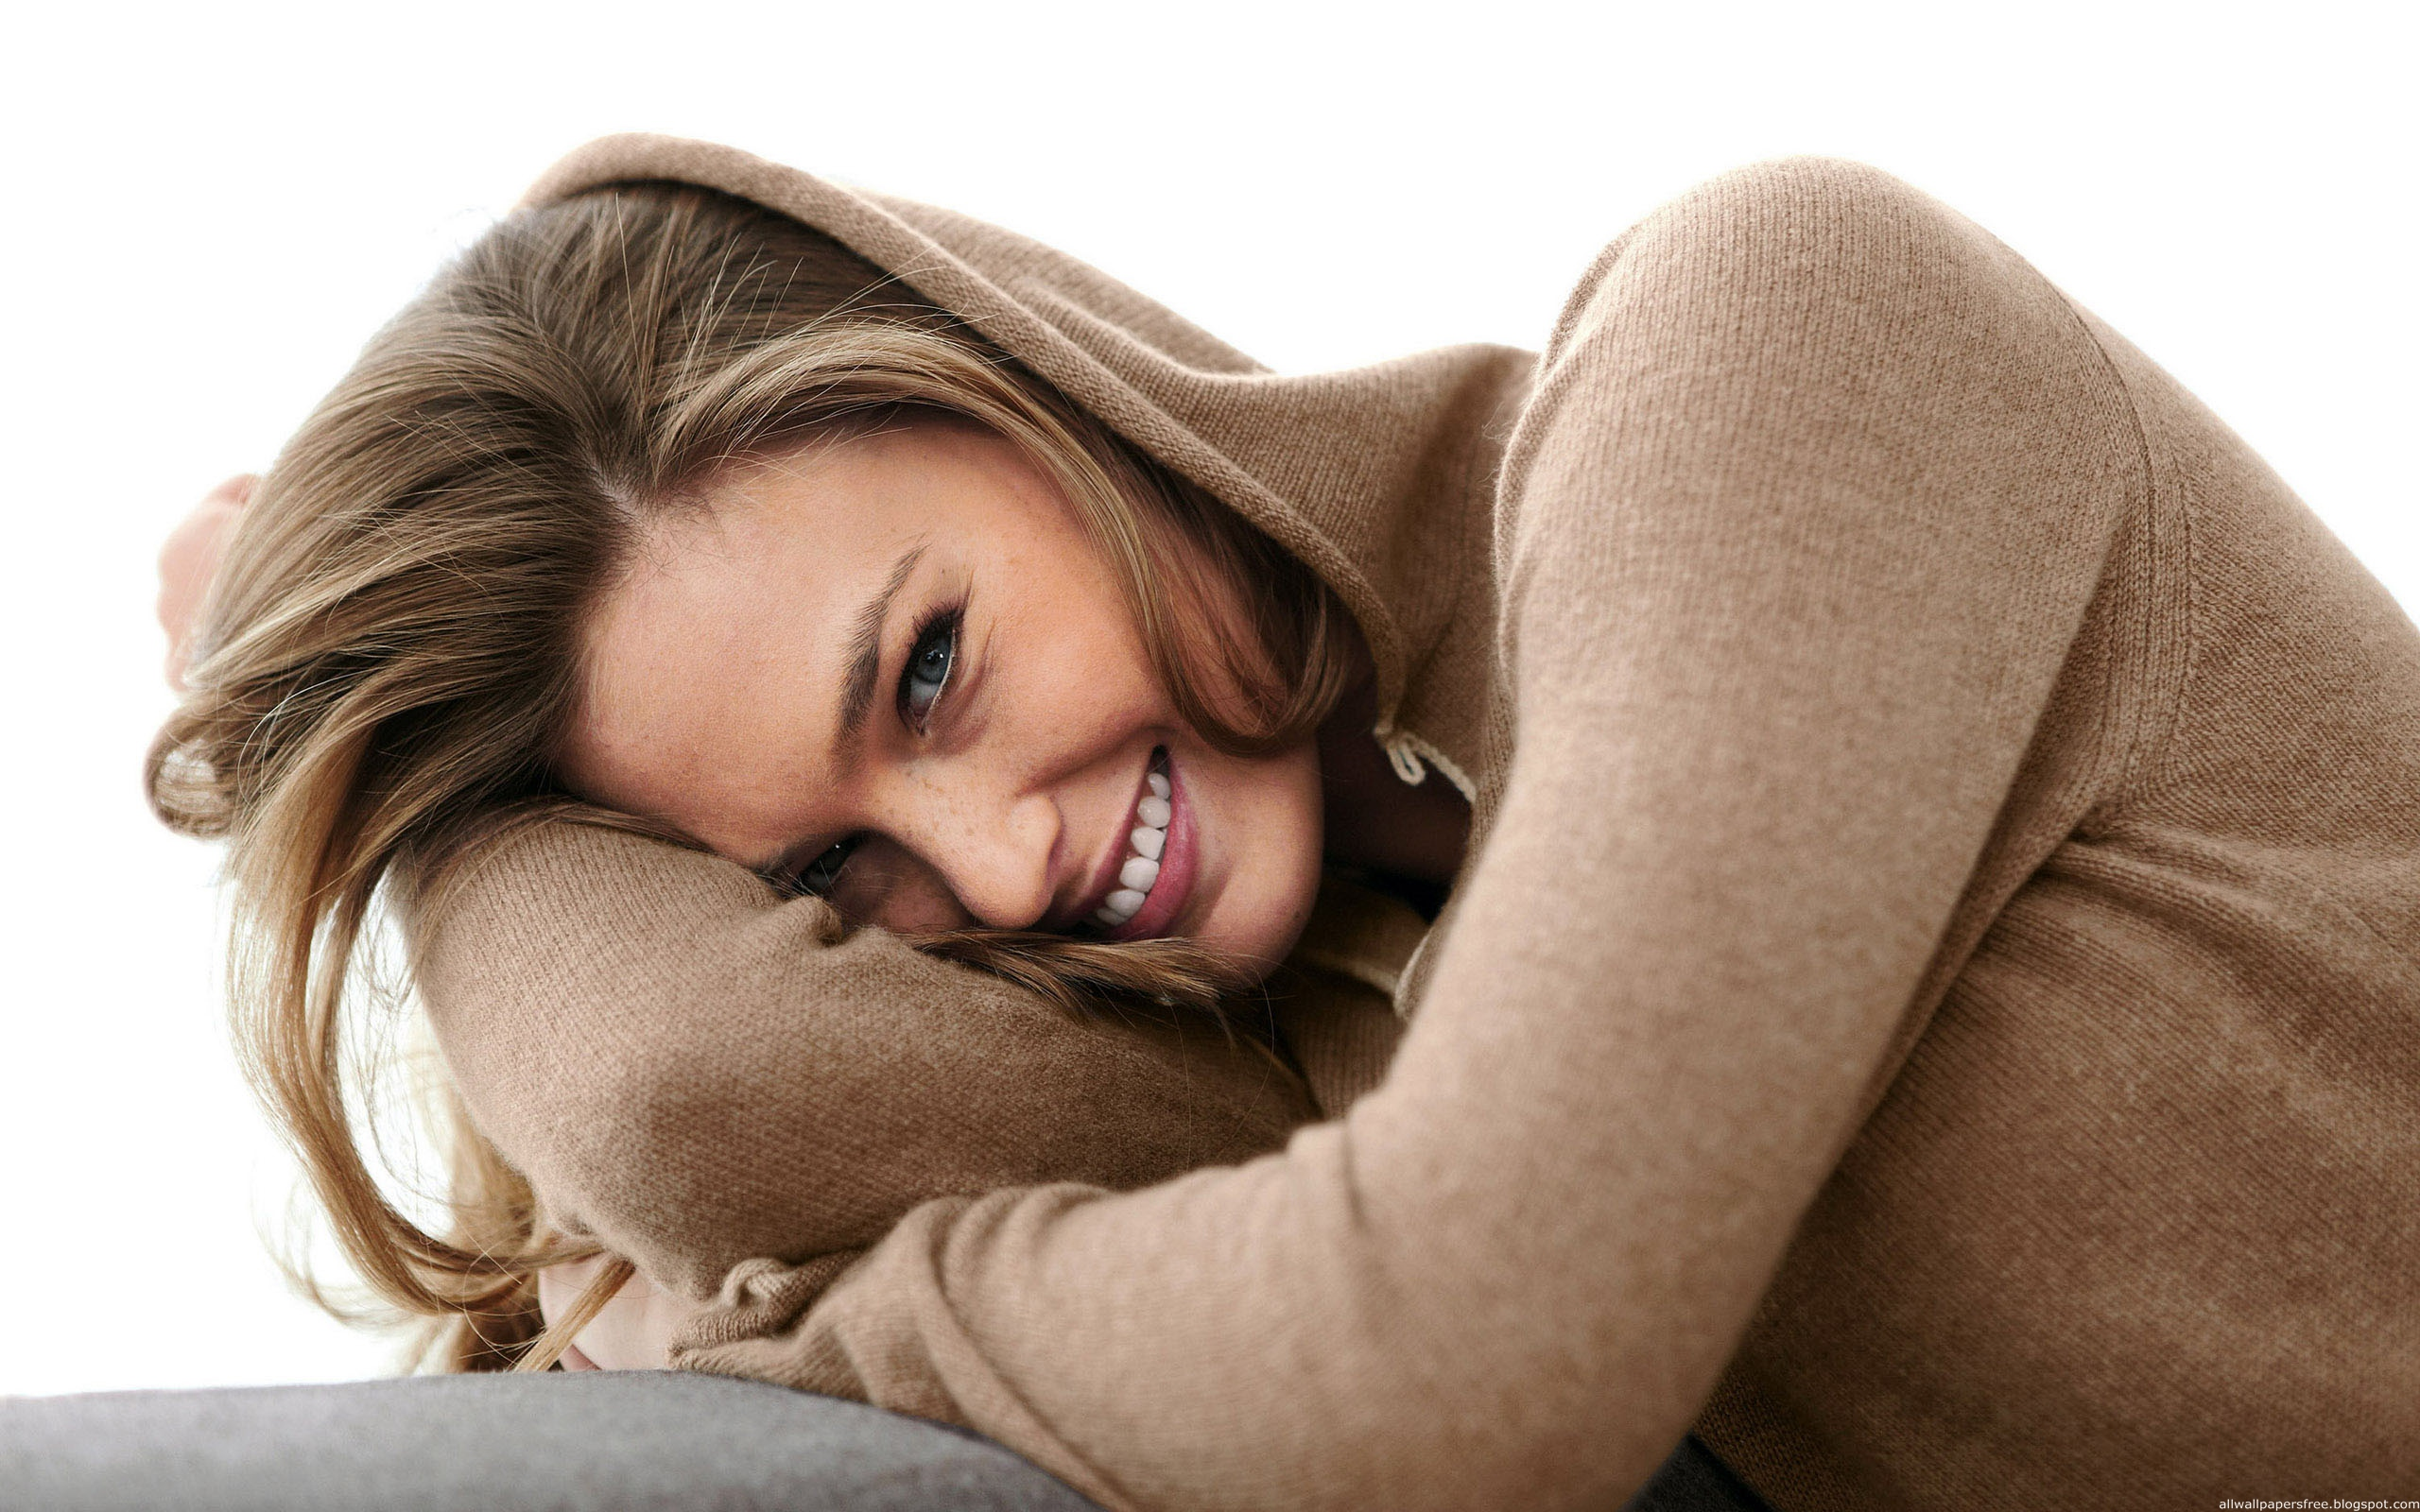 ddfccbcedbeefbdbbc-beautiful-smile-beautiful-pictures-wallpaper-wp3601419